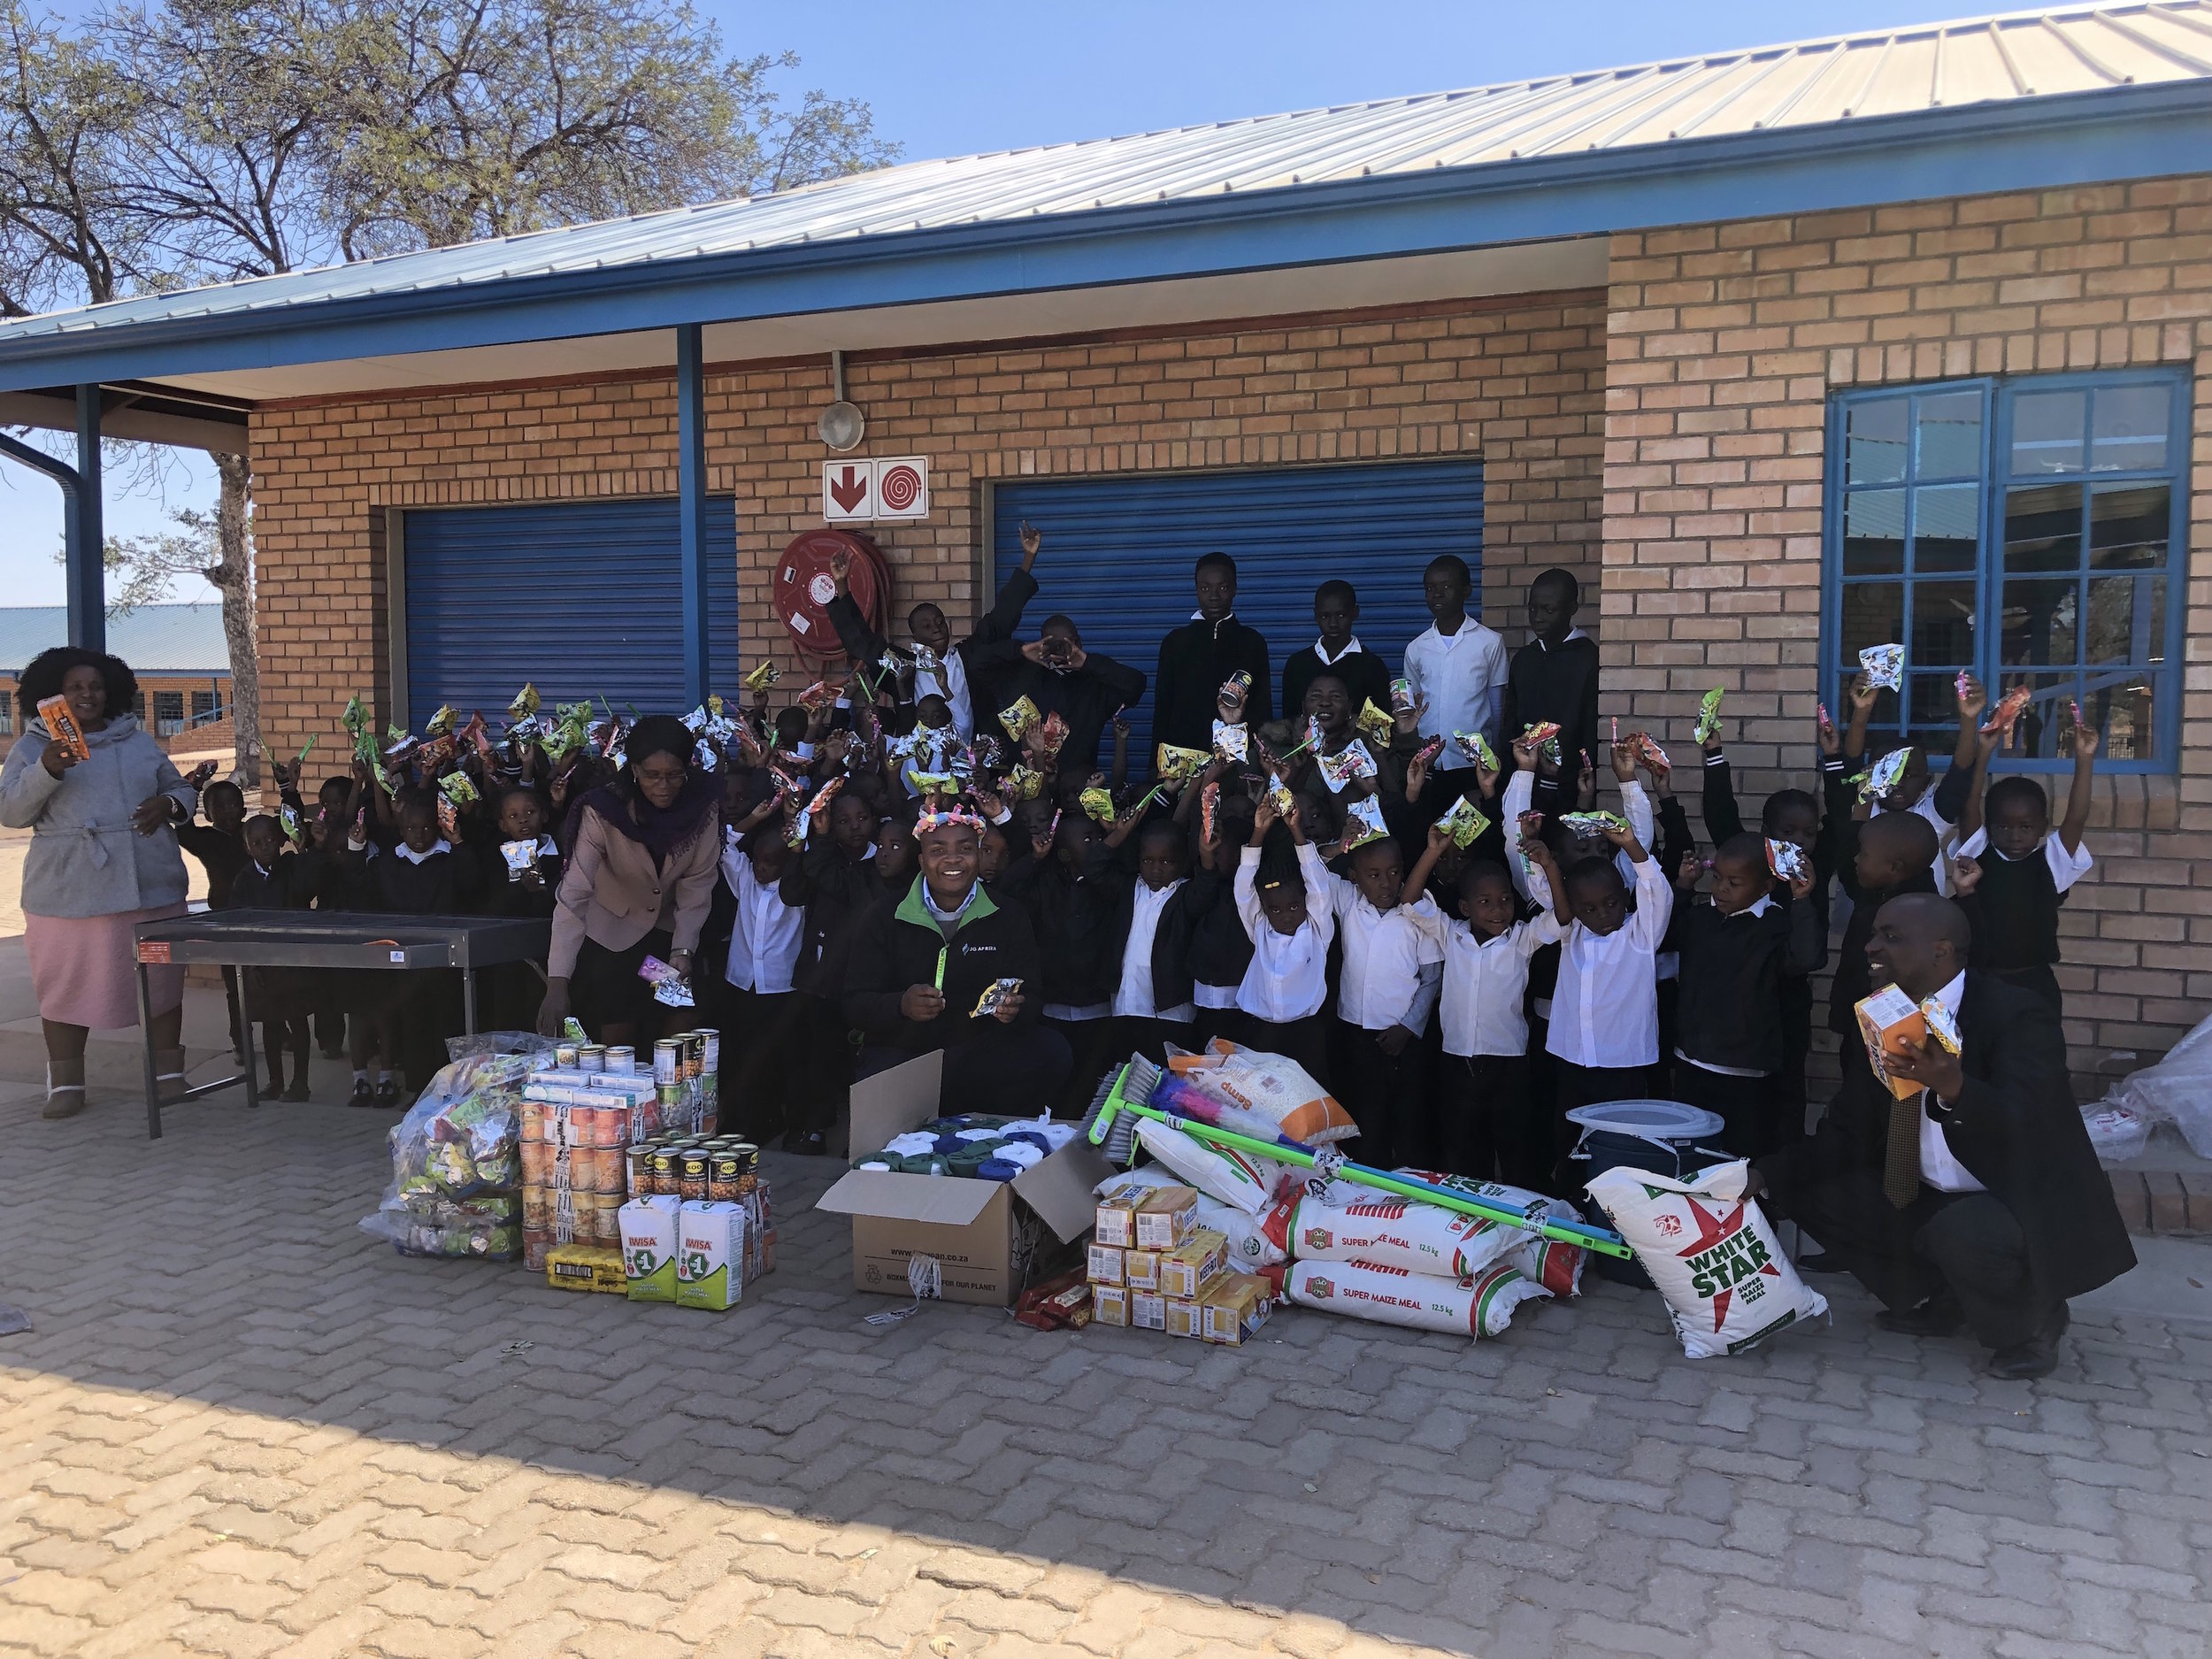 It was a joyous occasion when Pilusa arrived bearing bags of groceries collected by the firm's Johannesburg staff on Mandela Day.